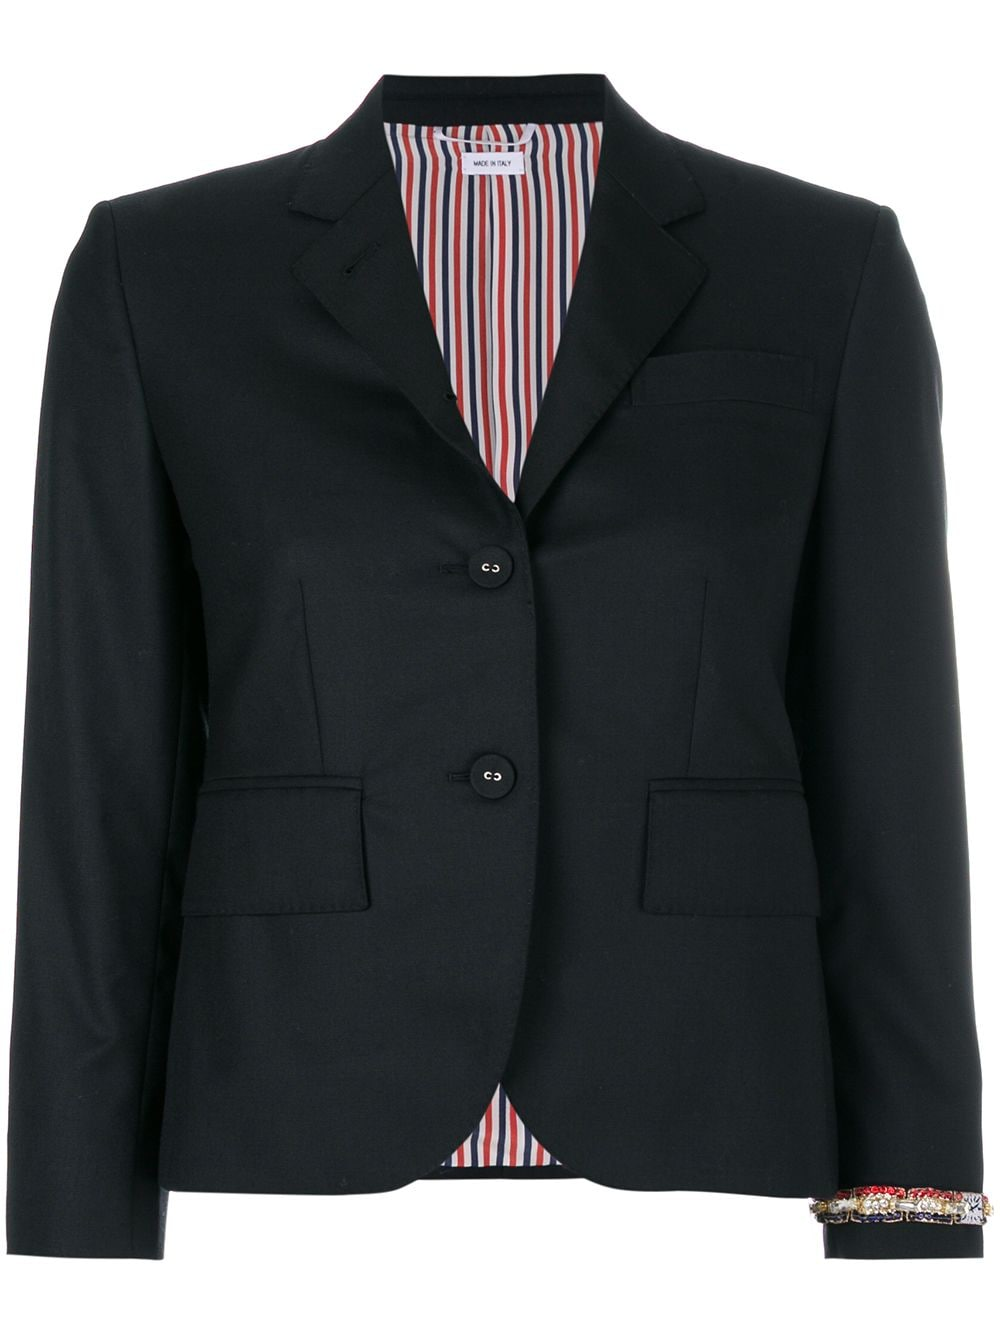 Thom Browne Classic Single Breasted Sport Coat With Wristwatch Applique & Combo Lapel In Super 120's Twill - Black von Thom Browne